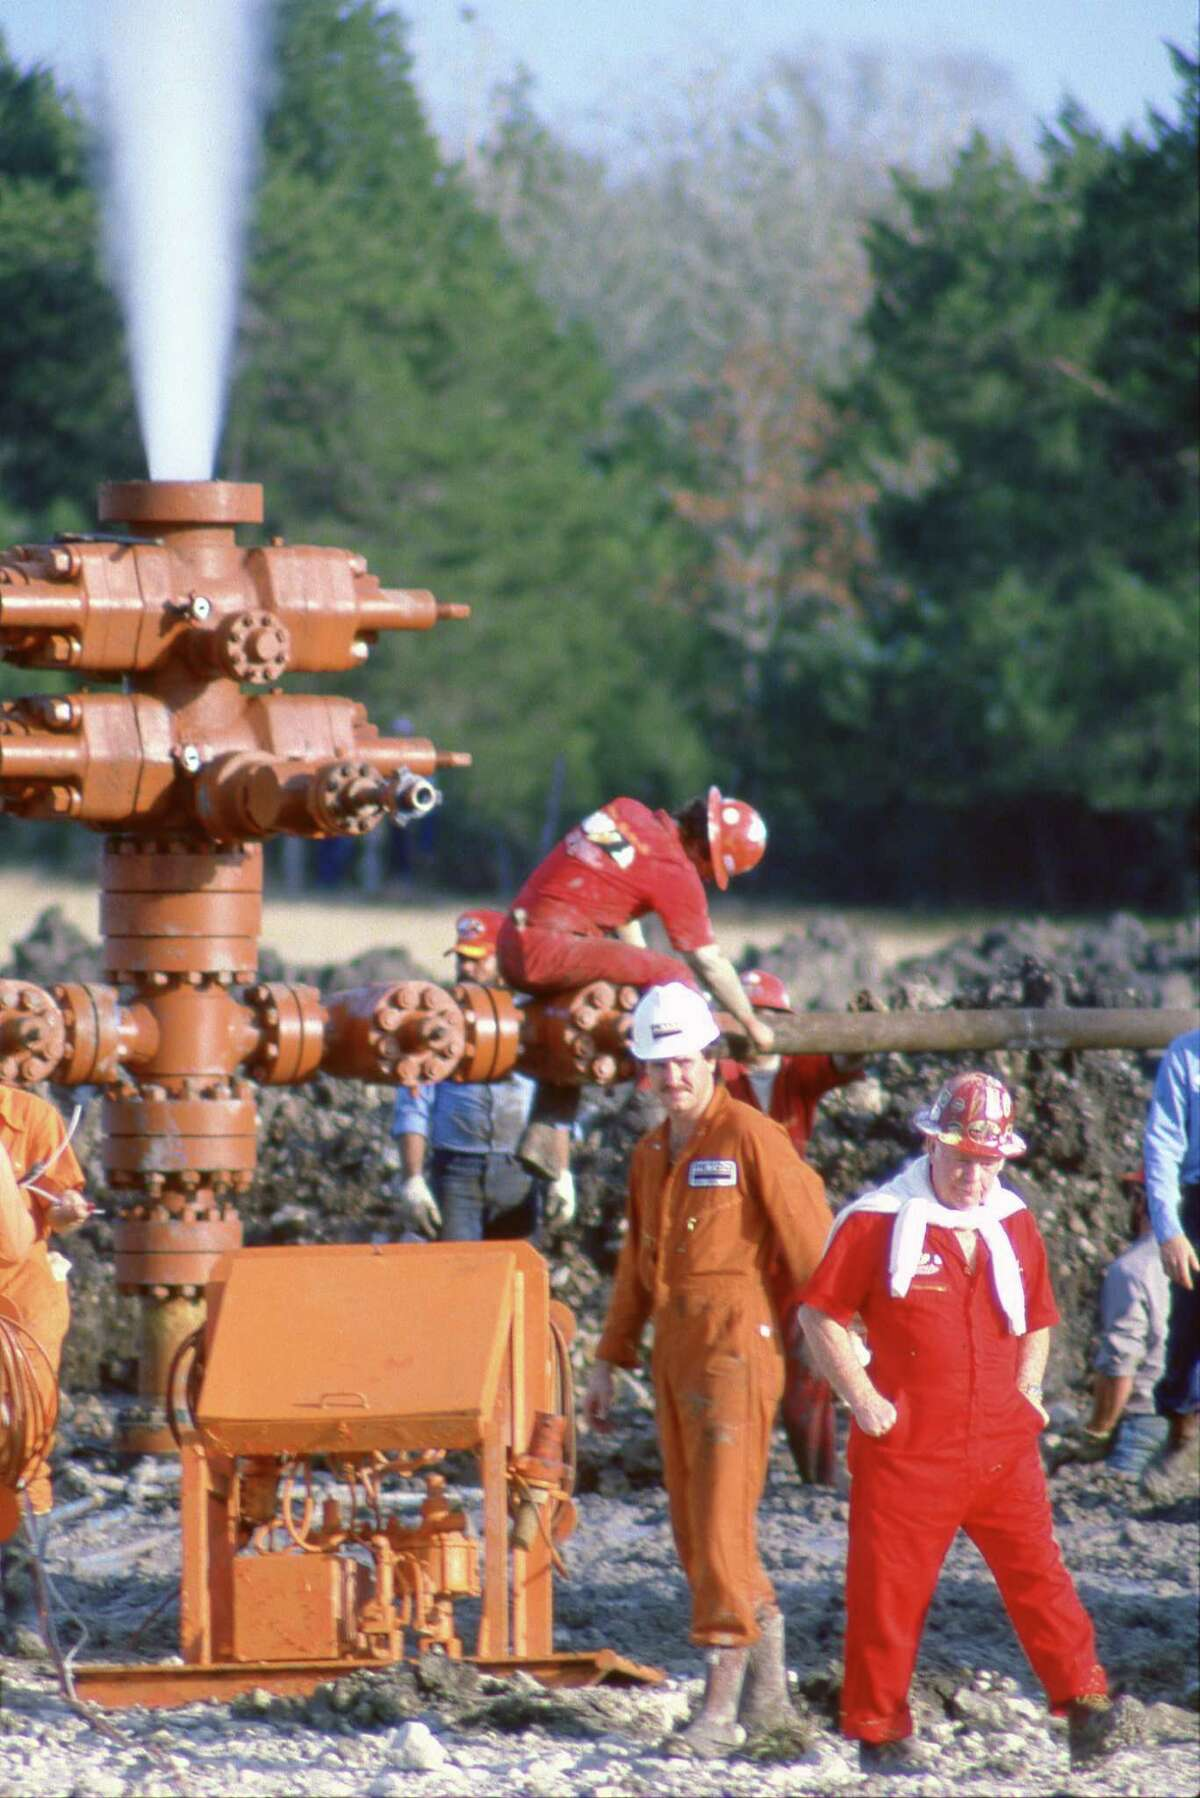 12/19/1984 - Red Adair, at right in red and white, and his firefighting crew extinguish a gas well blow-out near Round Top. Cedar Hill Petroleum Co. are the operators of the well.